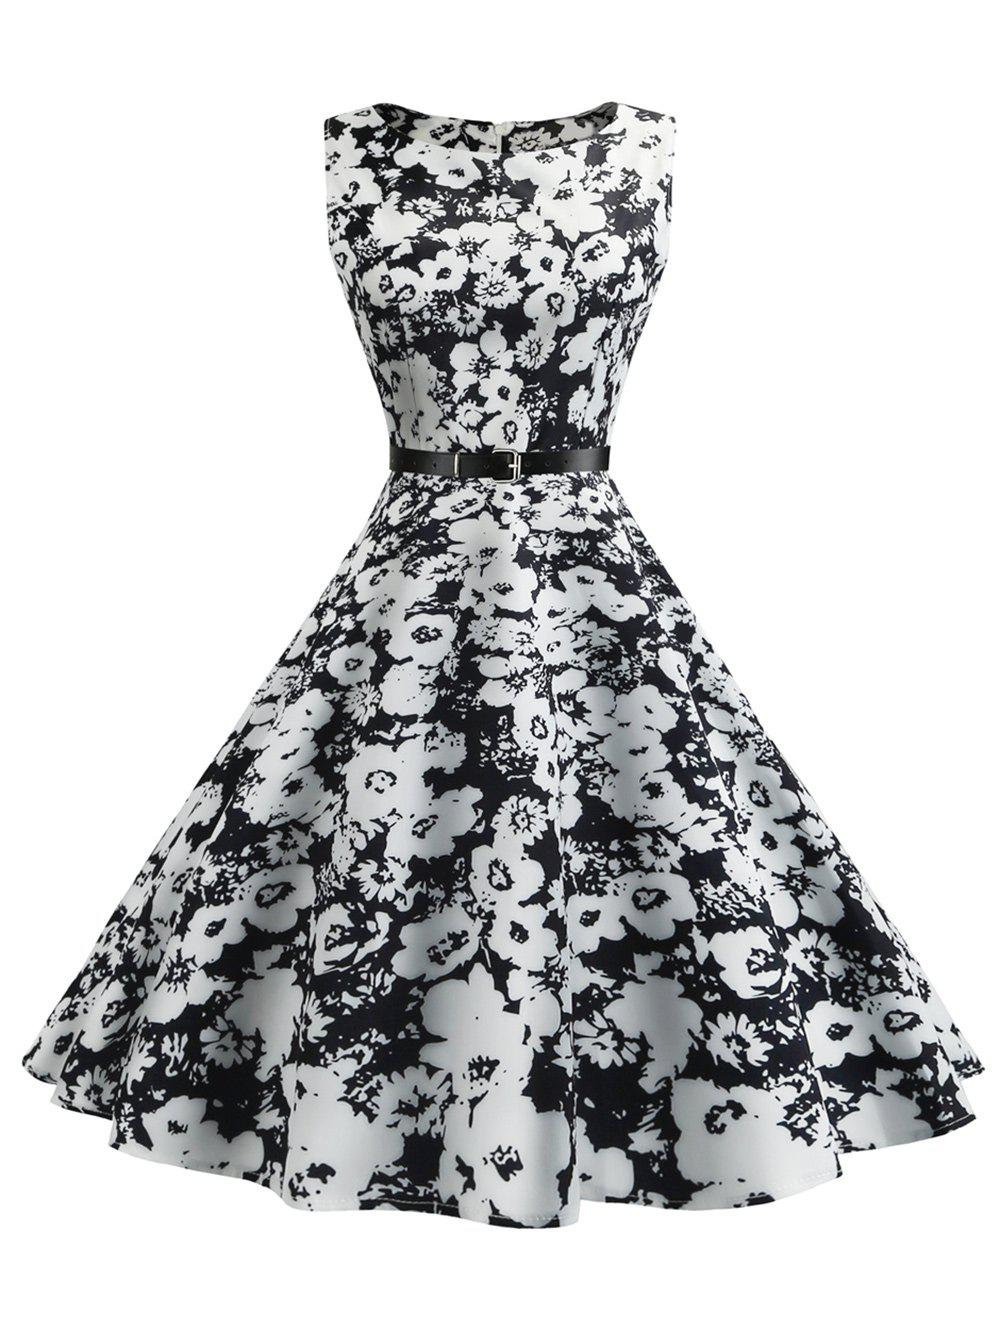 Floral Sleeveless Vintage Fit and Flare DressWOMEN<br><br>Size: 2XL; Color: WHITE; Style: Vintage; Material: Cotton,Polyester; Silhouette: A-Line; Dress Type: Fit and Flare Dress,Swing Dress; Dresses Length: Mid-Calf; Neckline: Round Collar; Sleeve Length: Sleeveless; Pattern Type: Floral; With Belt: Yes; Season: Summer; Weight: 0.2500kg; Package Contents: 1 x Dress 1 x Belt;